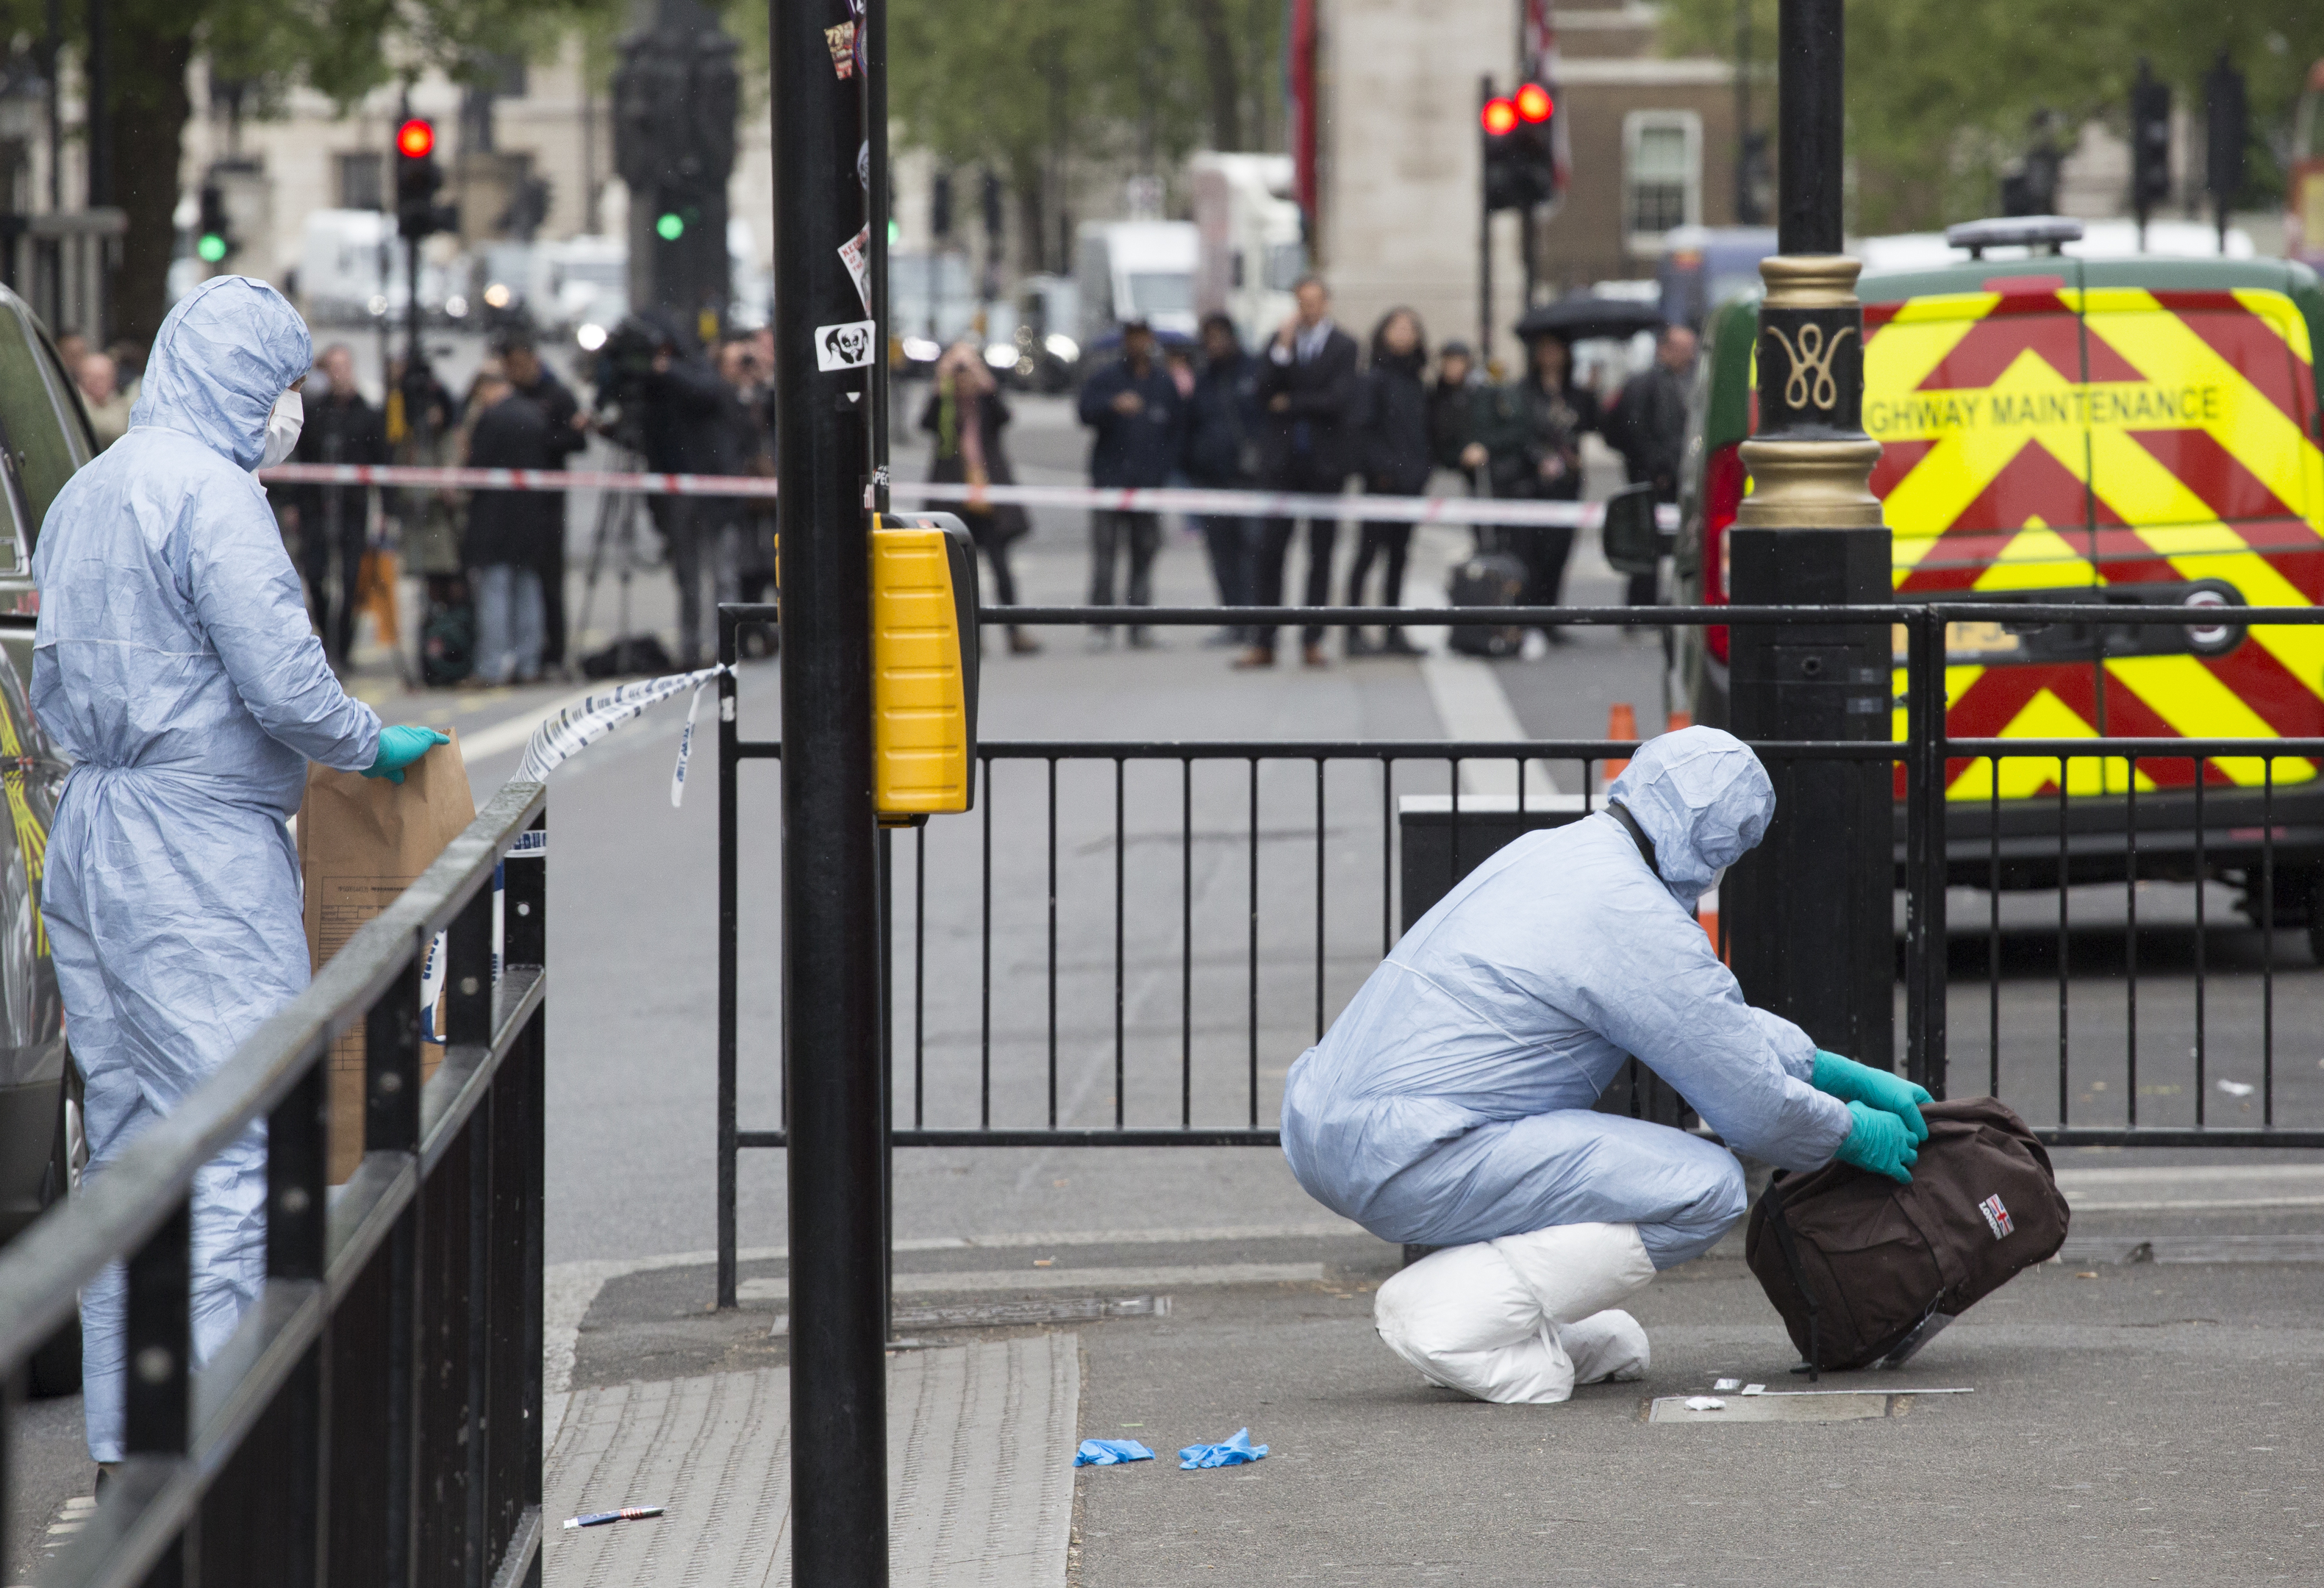 Forensic Officers collect evidence at the scene (John Phillips/Getty Images)